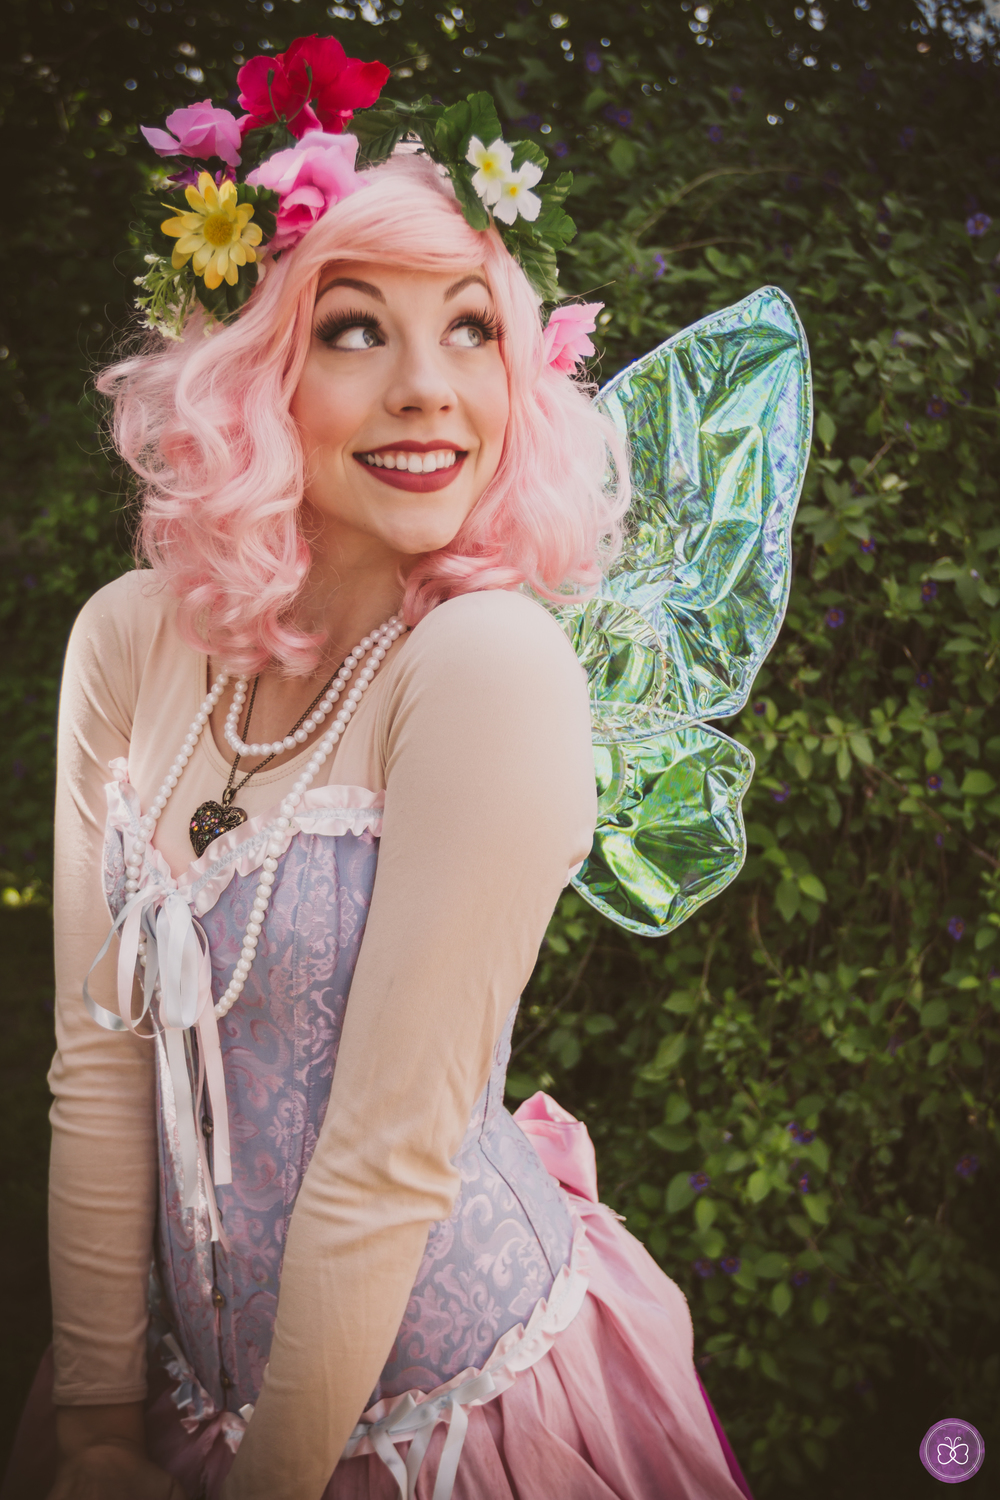 magical fairy party character faeries los angeles (1 of 1).jpg